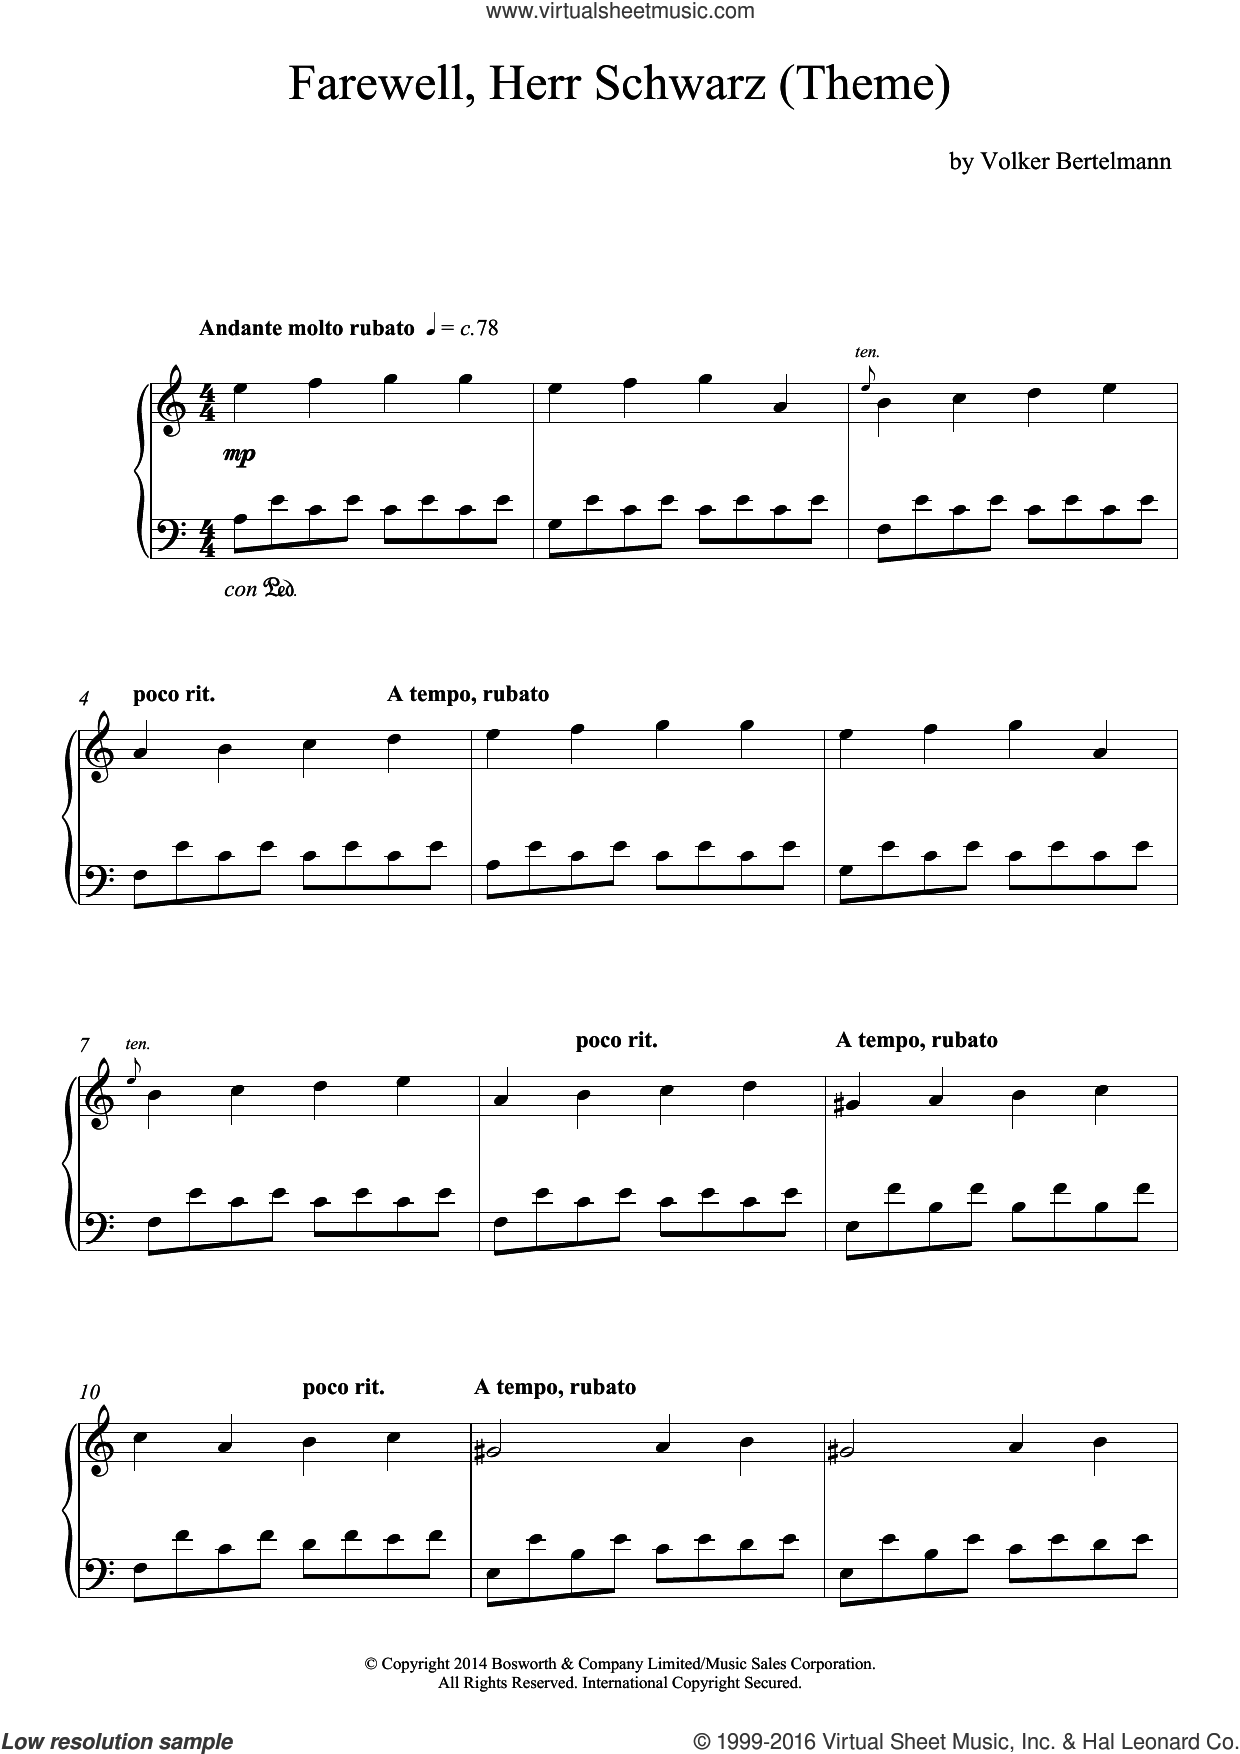 Farewell, Herr Schwarz (Theme) sheet music for piano solo by Hauschka and Volker Bertelmann, classical score, intermediate skill level